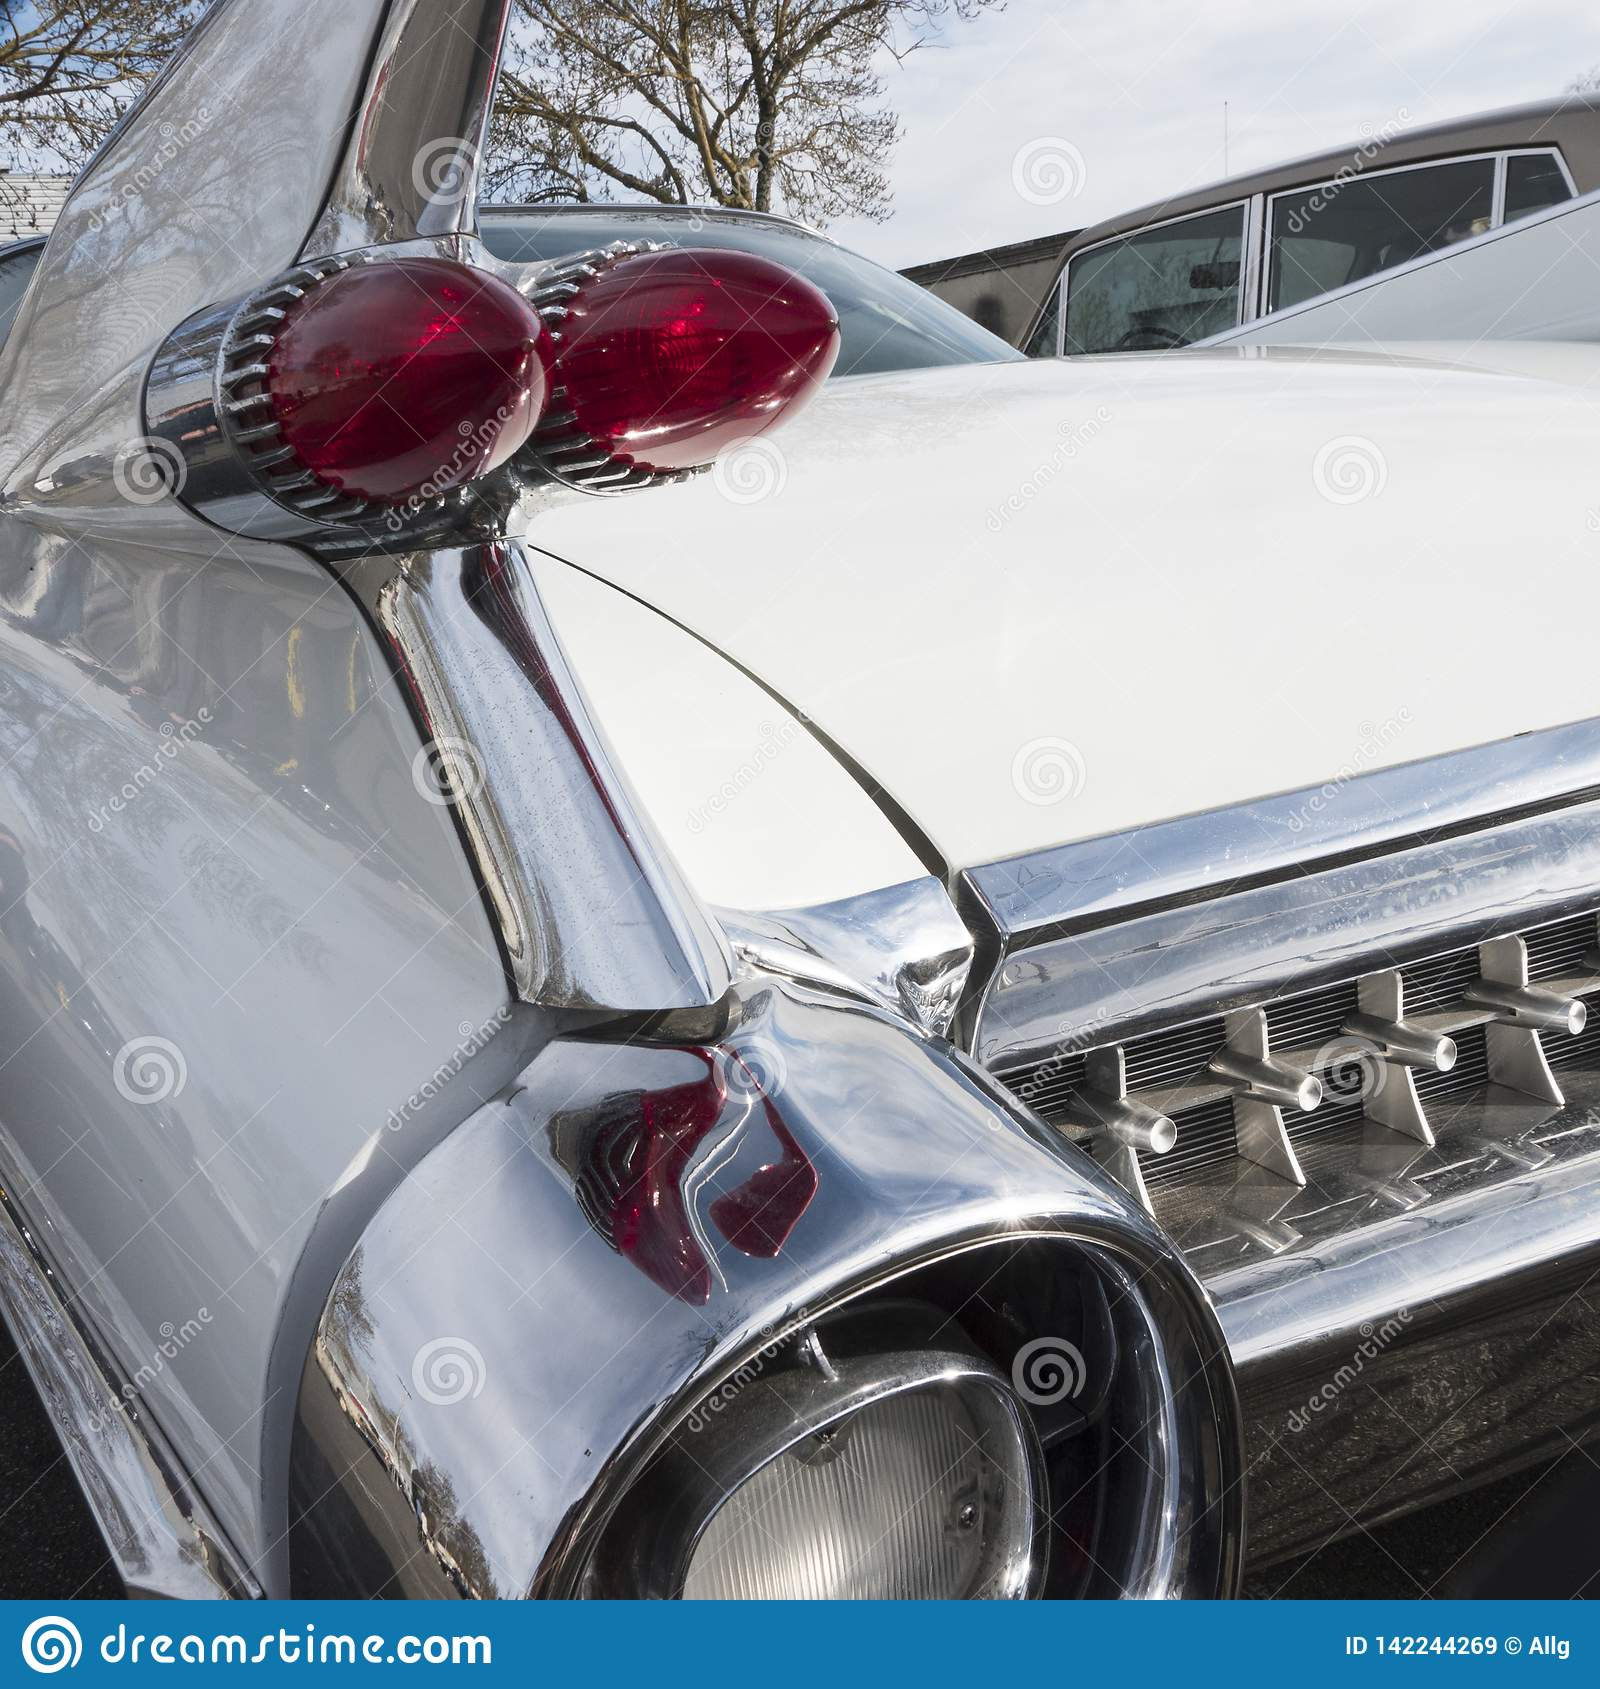 Close-up of the rear of an ancient luxury car.